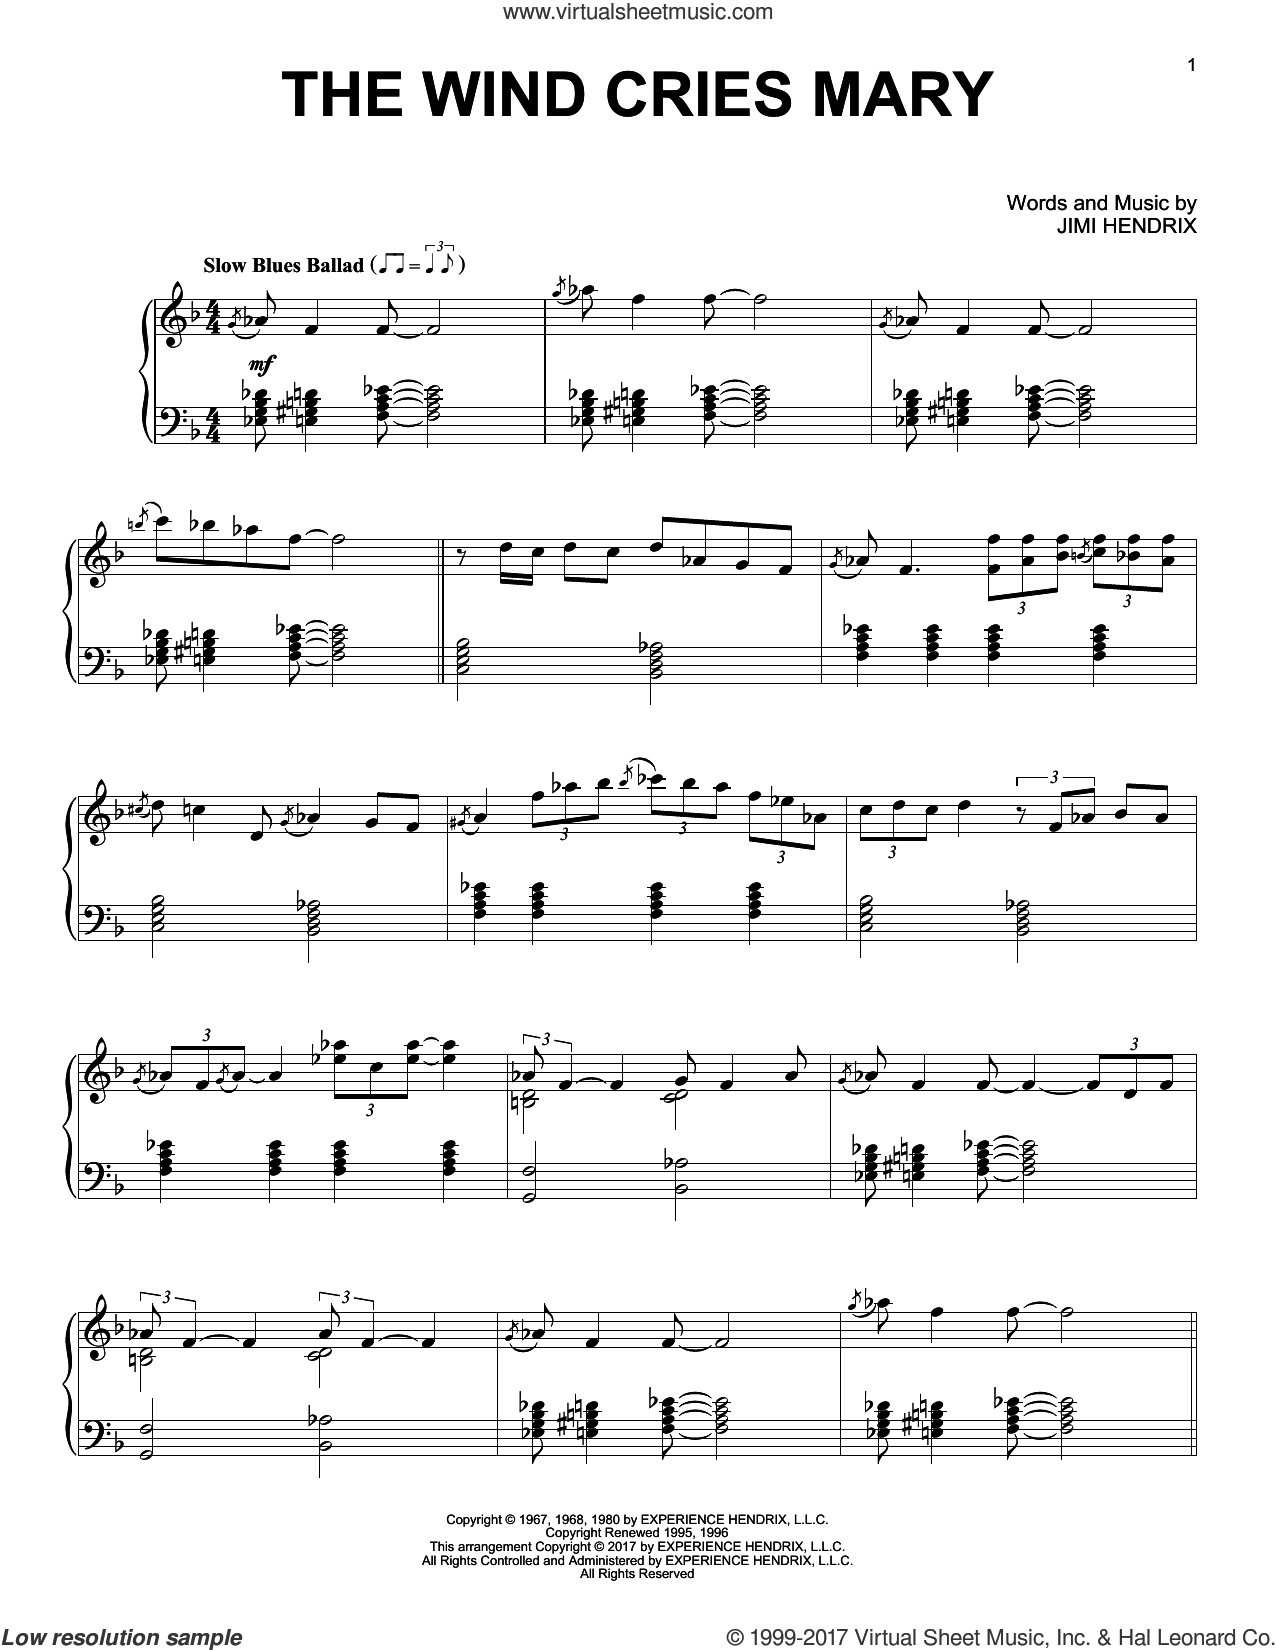 The Wind Cries Mary [Jazz version] sheet music for piano solo by Jimi Hendrix, intermediate skill level